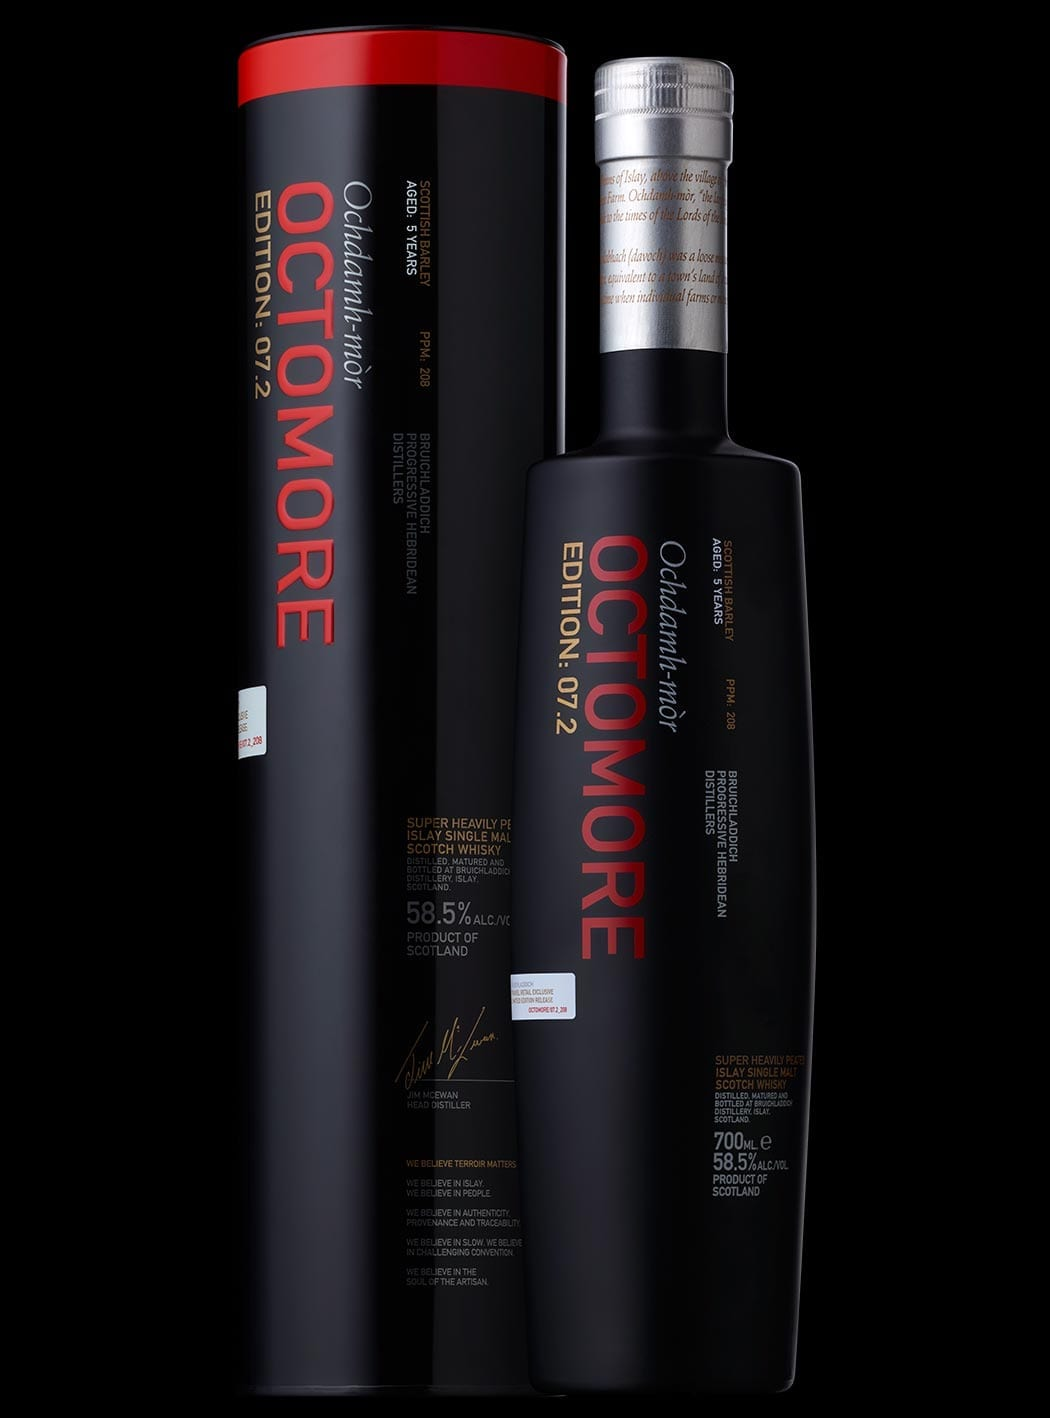 Octomore 06.3